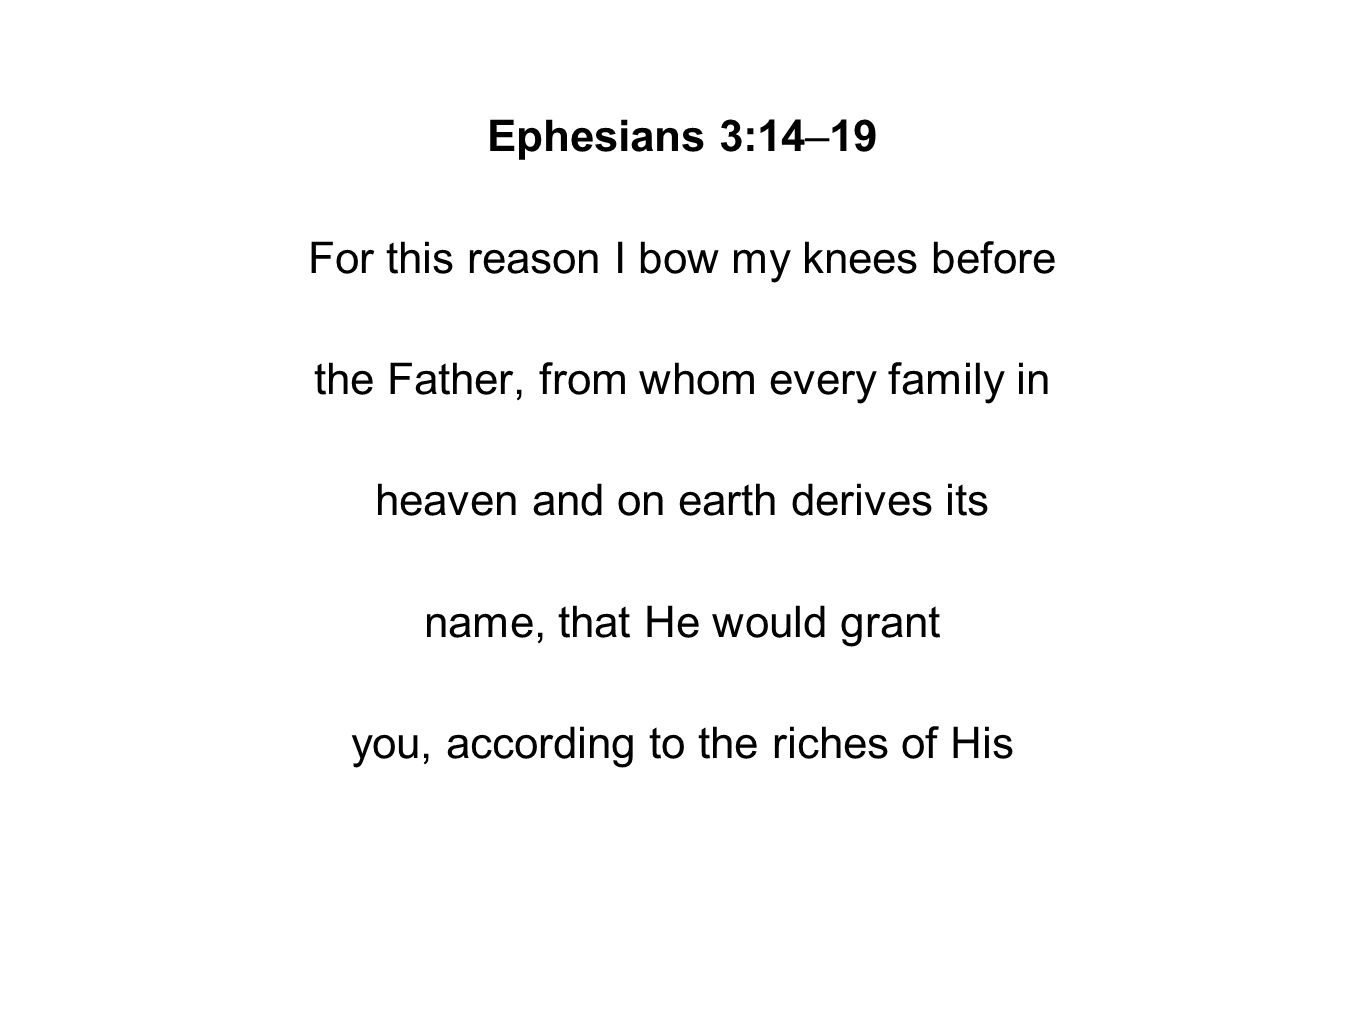 Ephesians 3:14–19 For this reason I bow my knees before the Father, from whom every family in heaven and on earth derives its name, that He would grant you, according to the riches of His